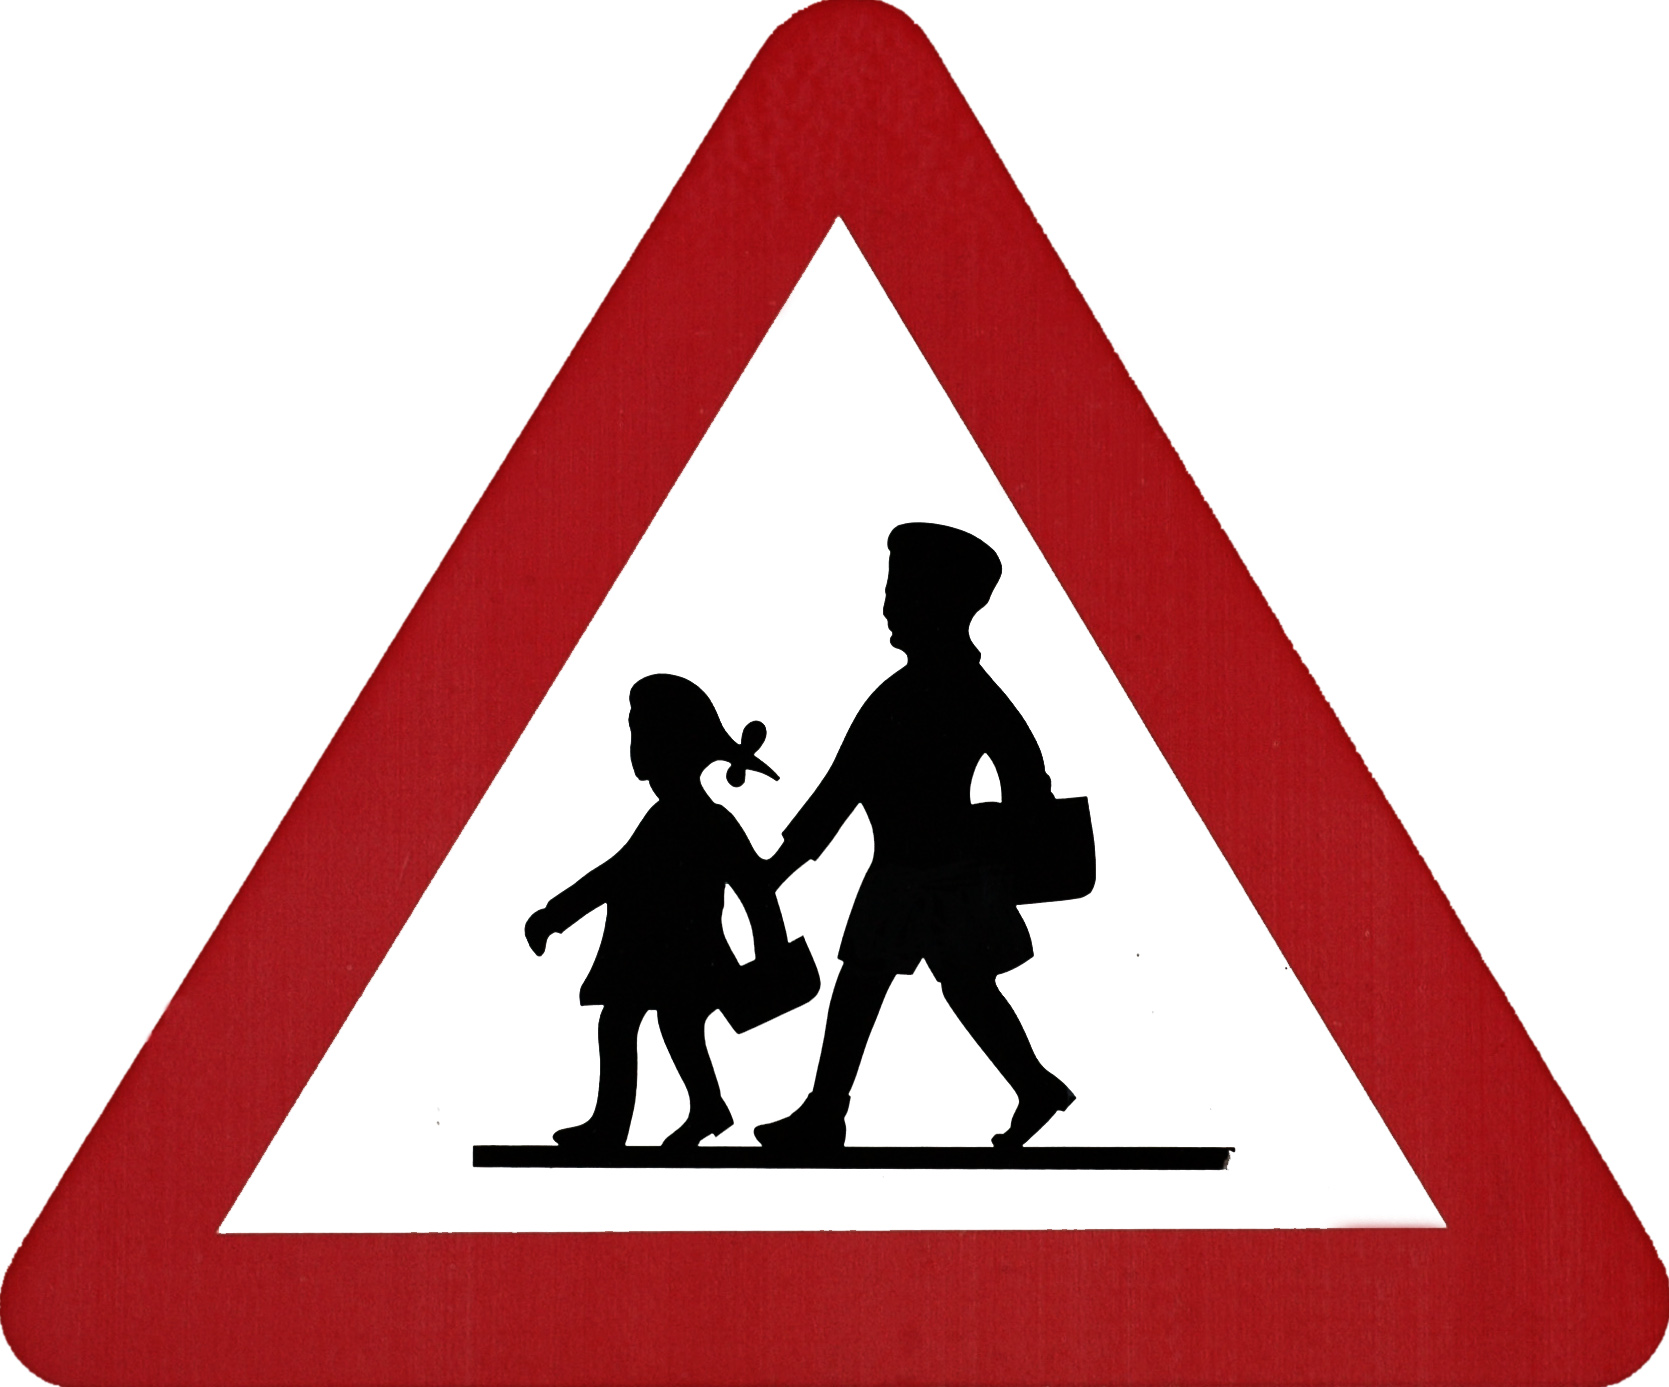 Traffic Signs Pictures